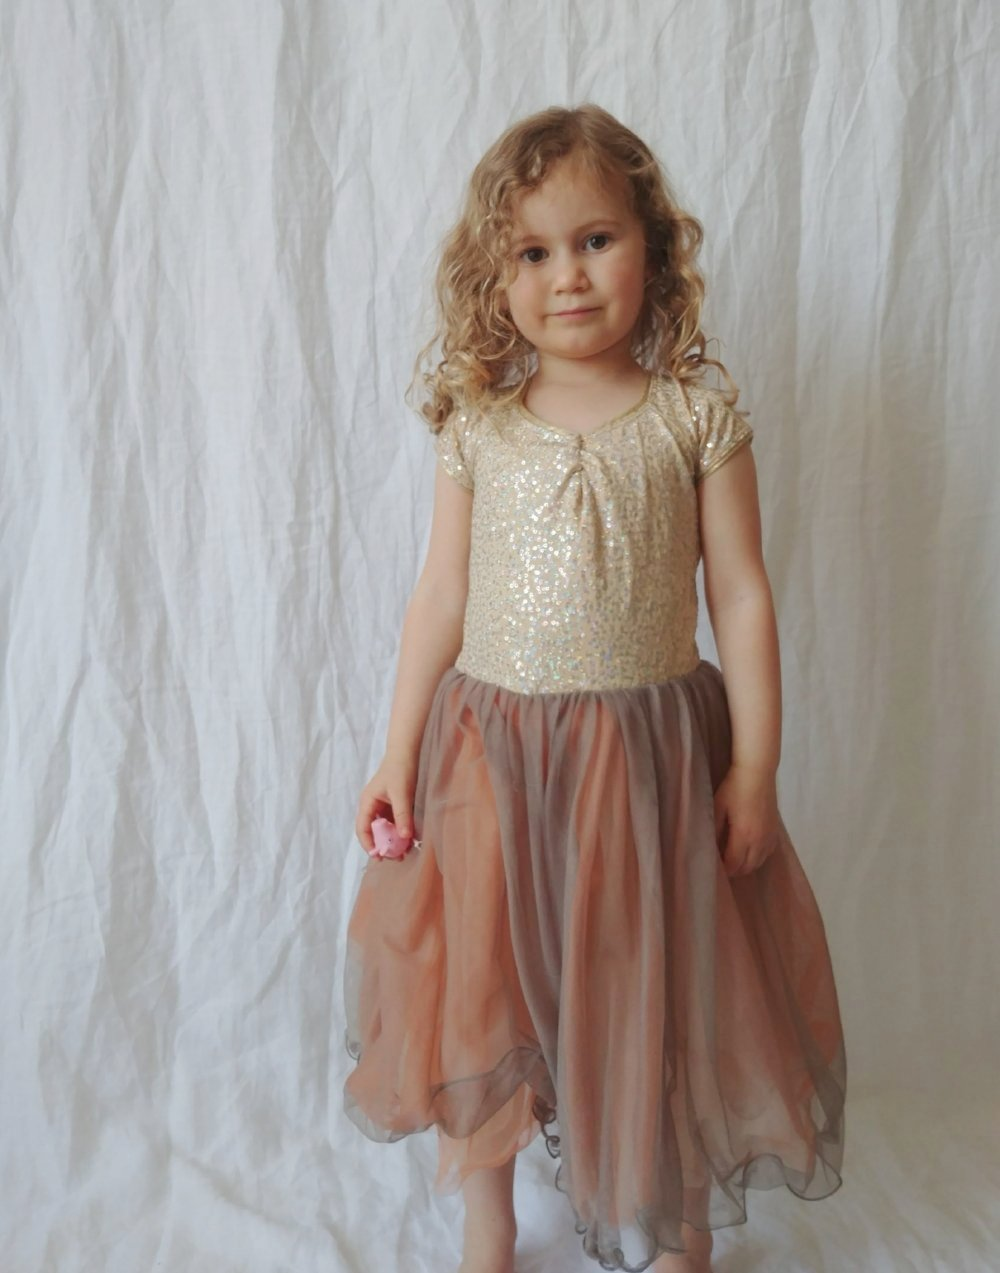 Peaches & Cream Tutu Dress